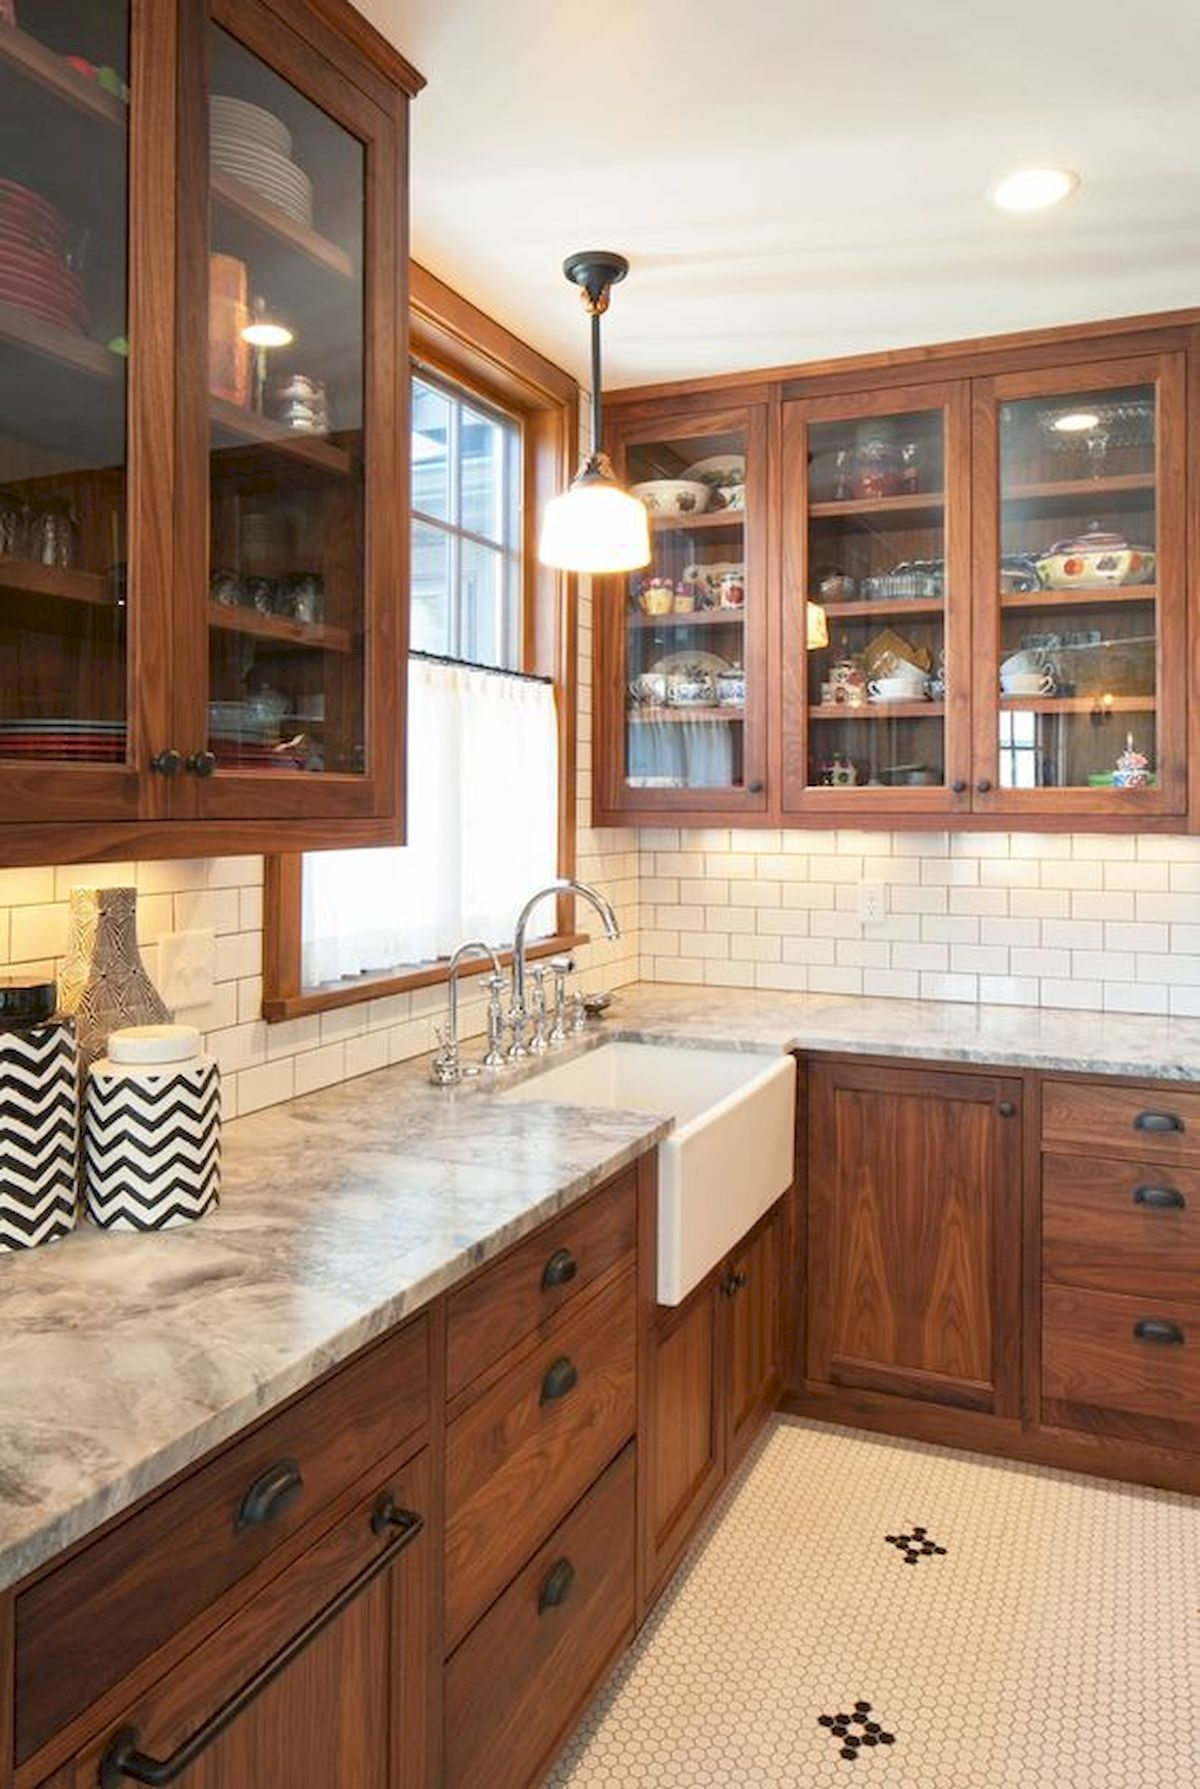 40 Best Farmhouse Kitchen Cabinets Design Ideas (32 #farmhousekitchencountertops